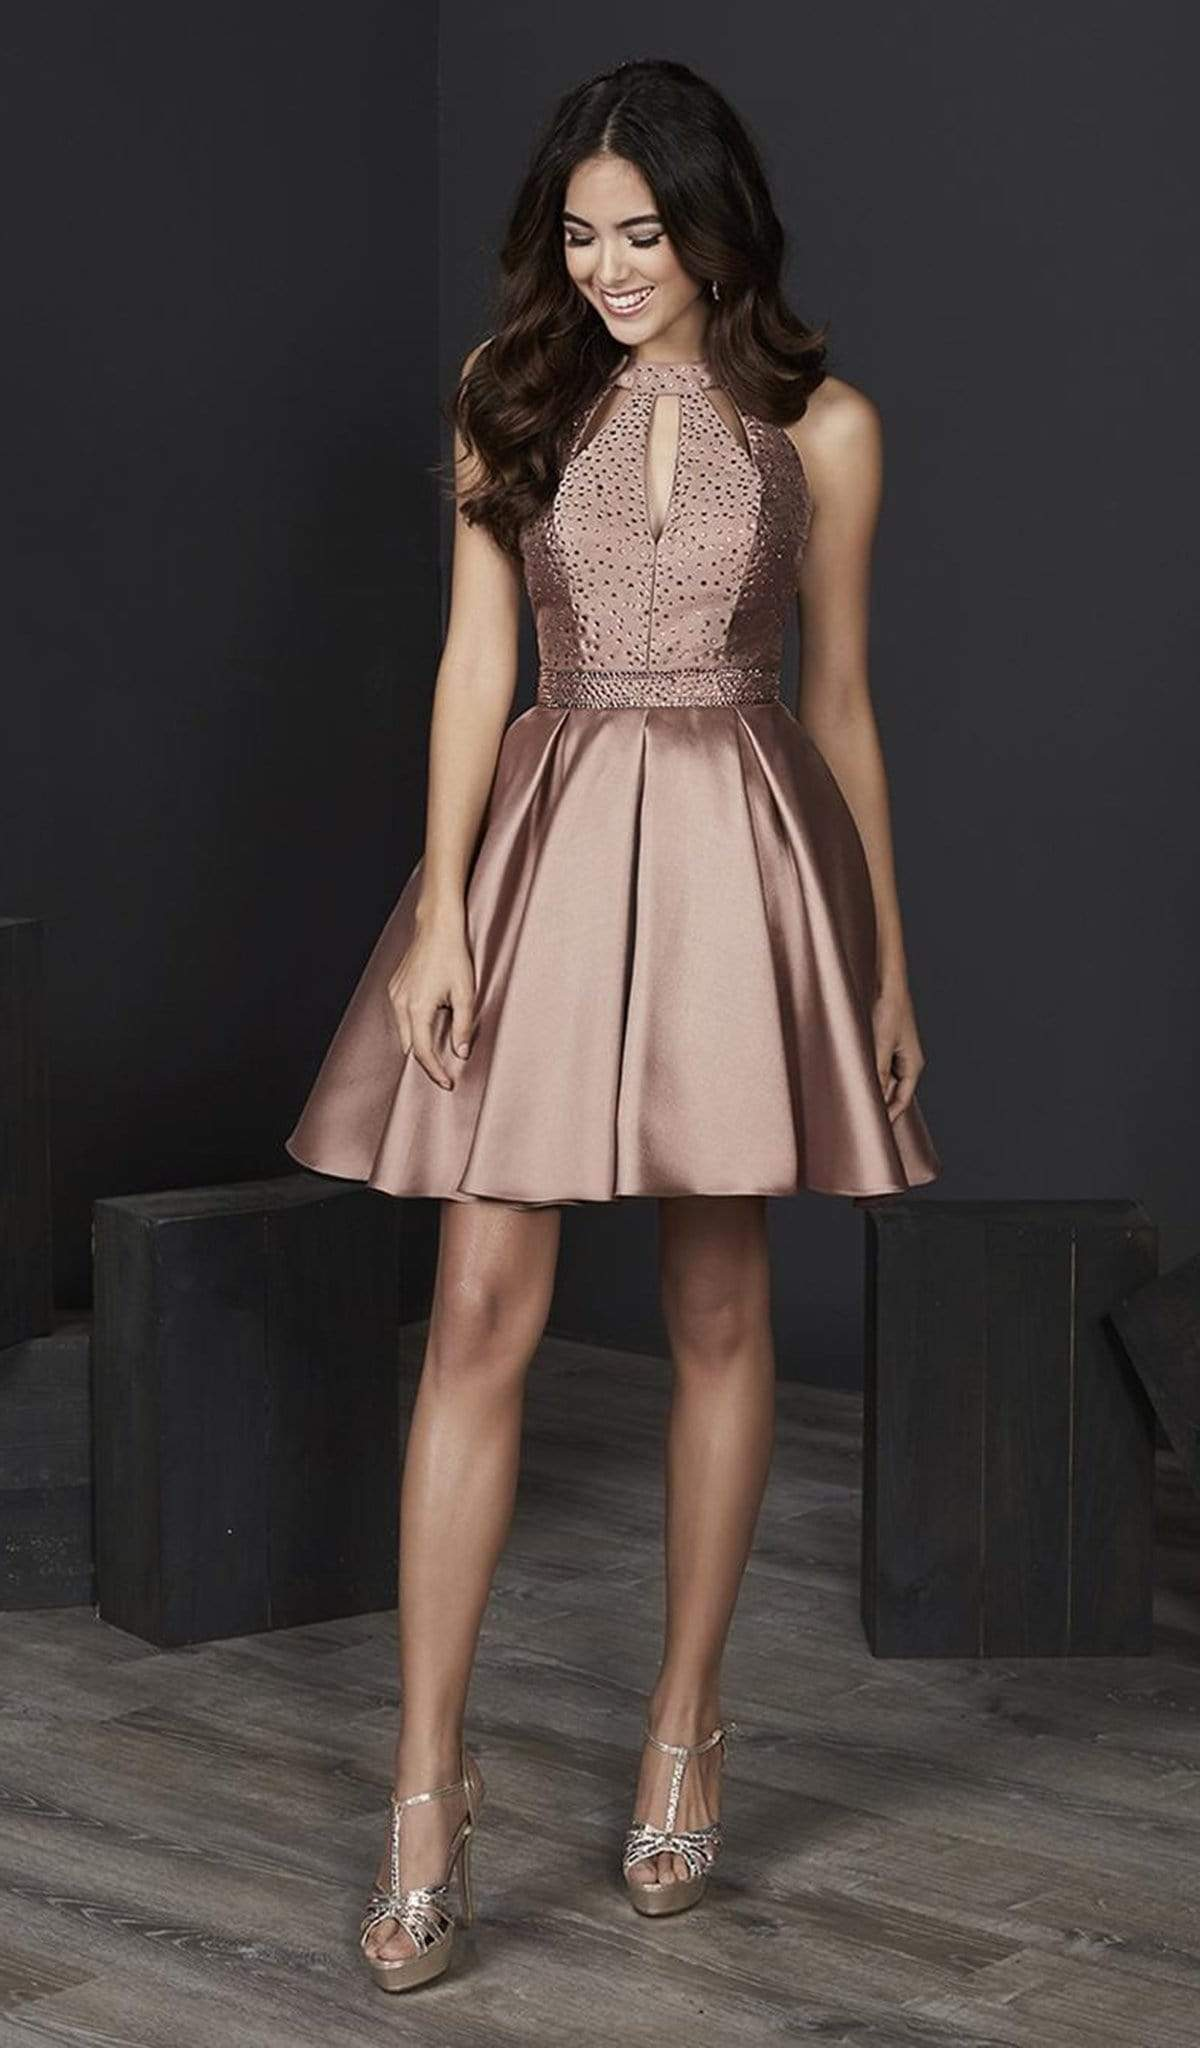 Tiffany Homecoming - 27230 Embellished Halter Mikado A-line Dress from Tiffany Homecoming